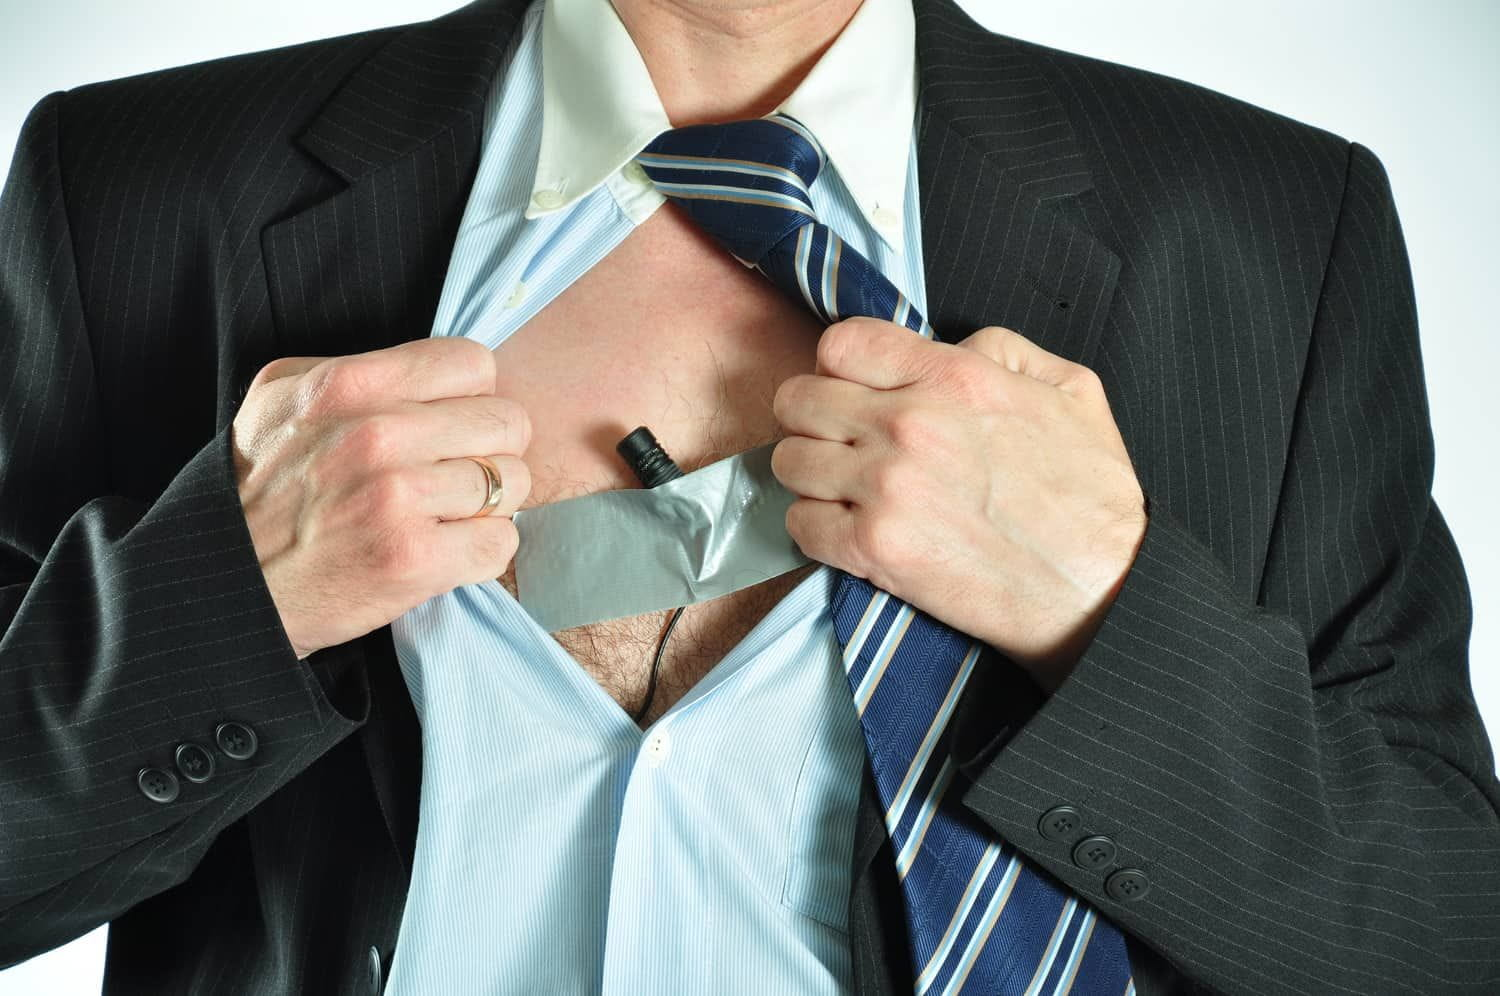 Man with hidden microphone taped to chest